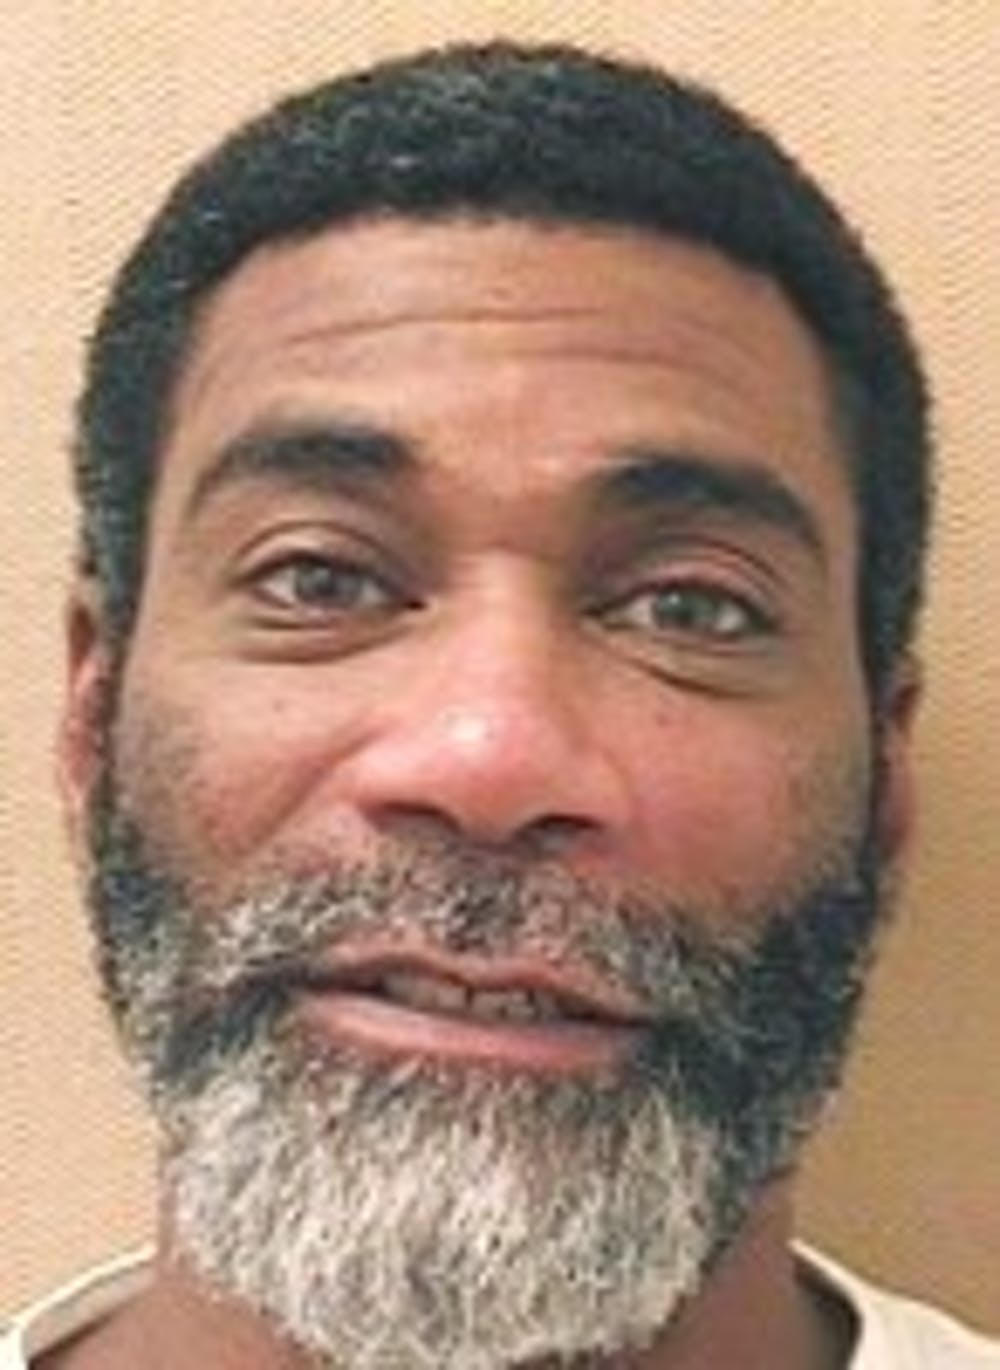 Prisoner flees UNC Hospitals and crashes a police car - The Daily